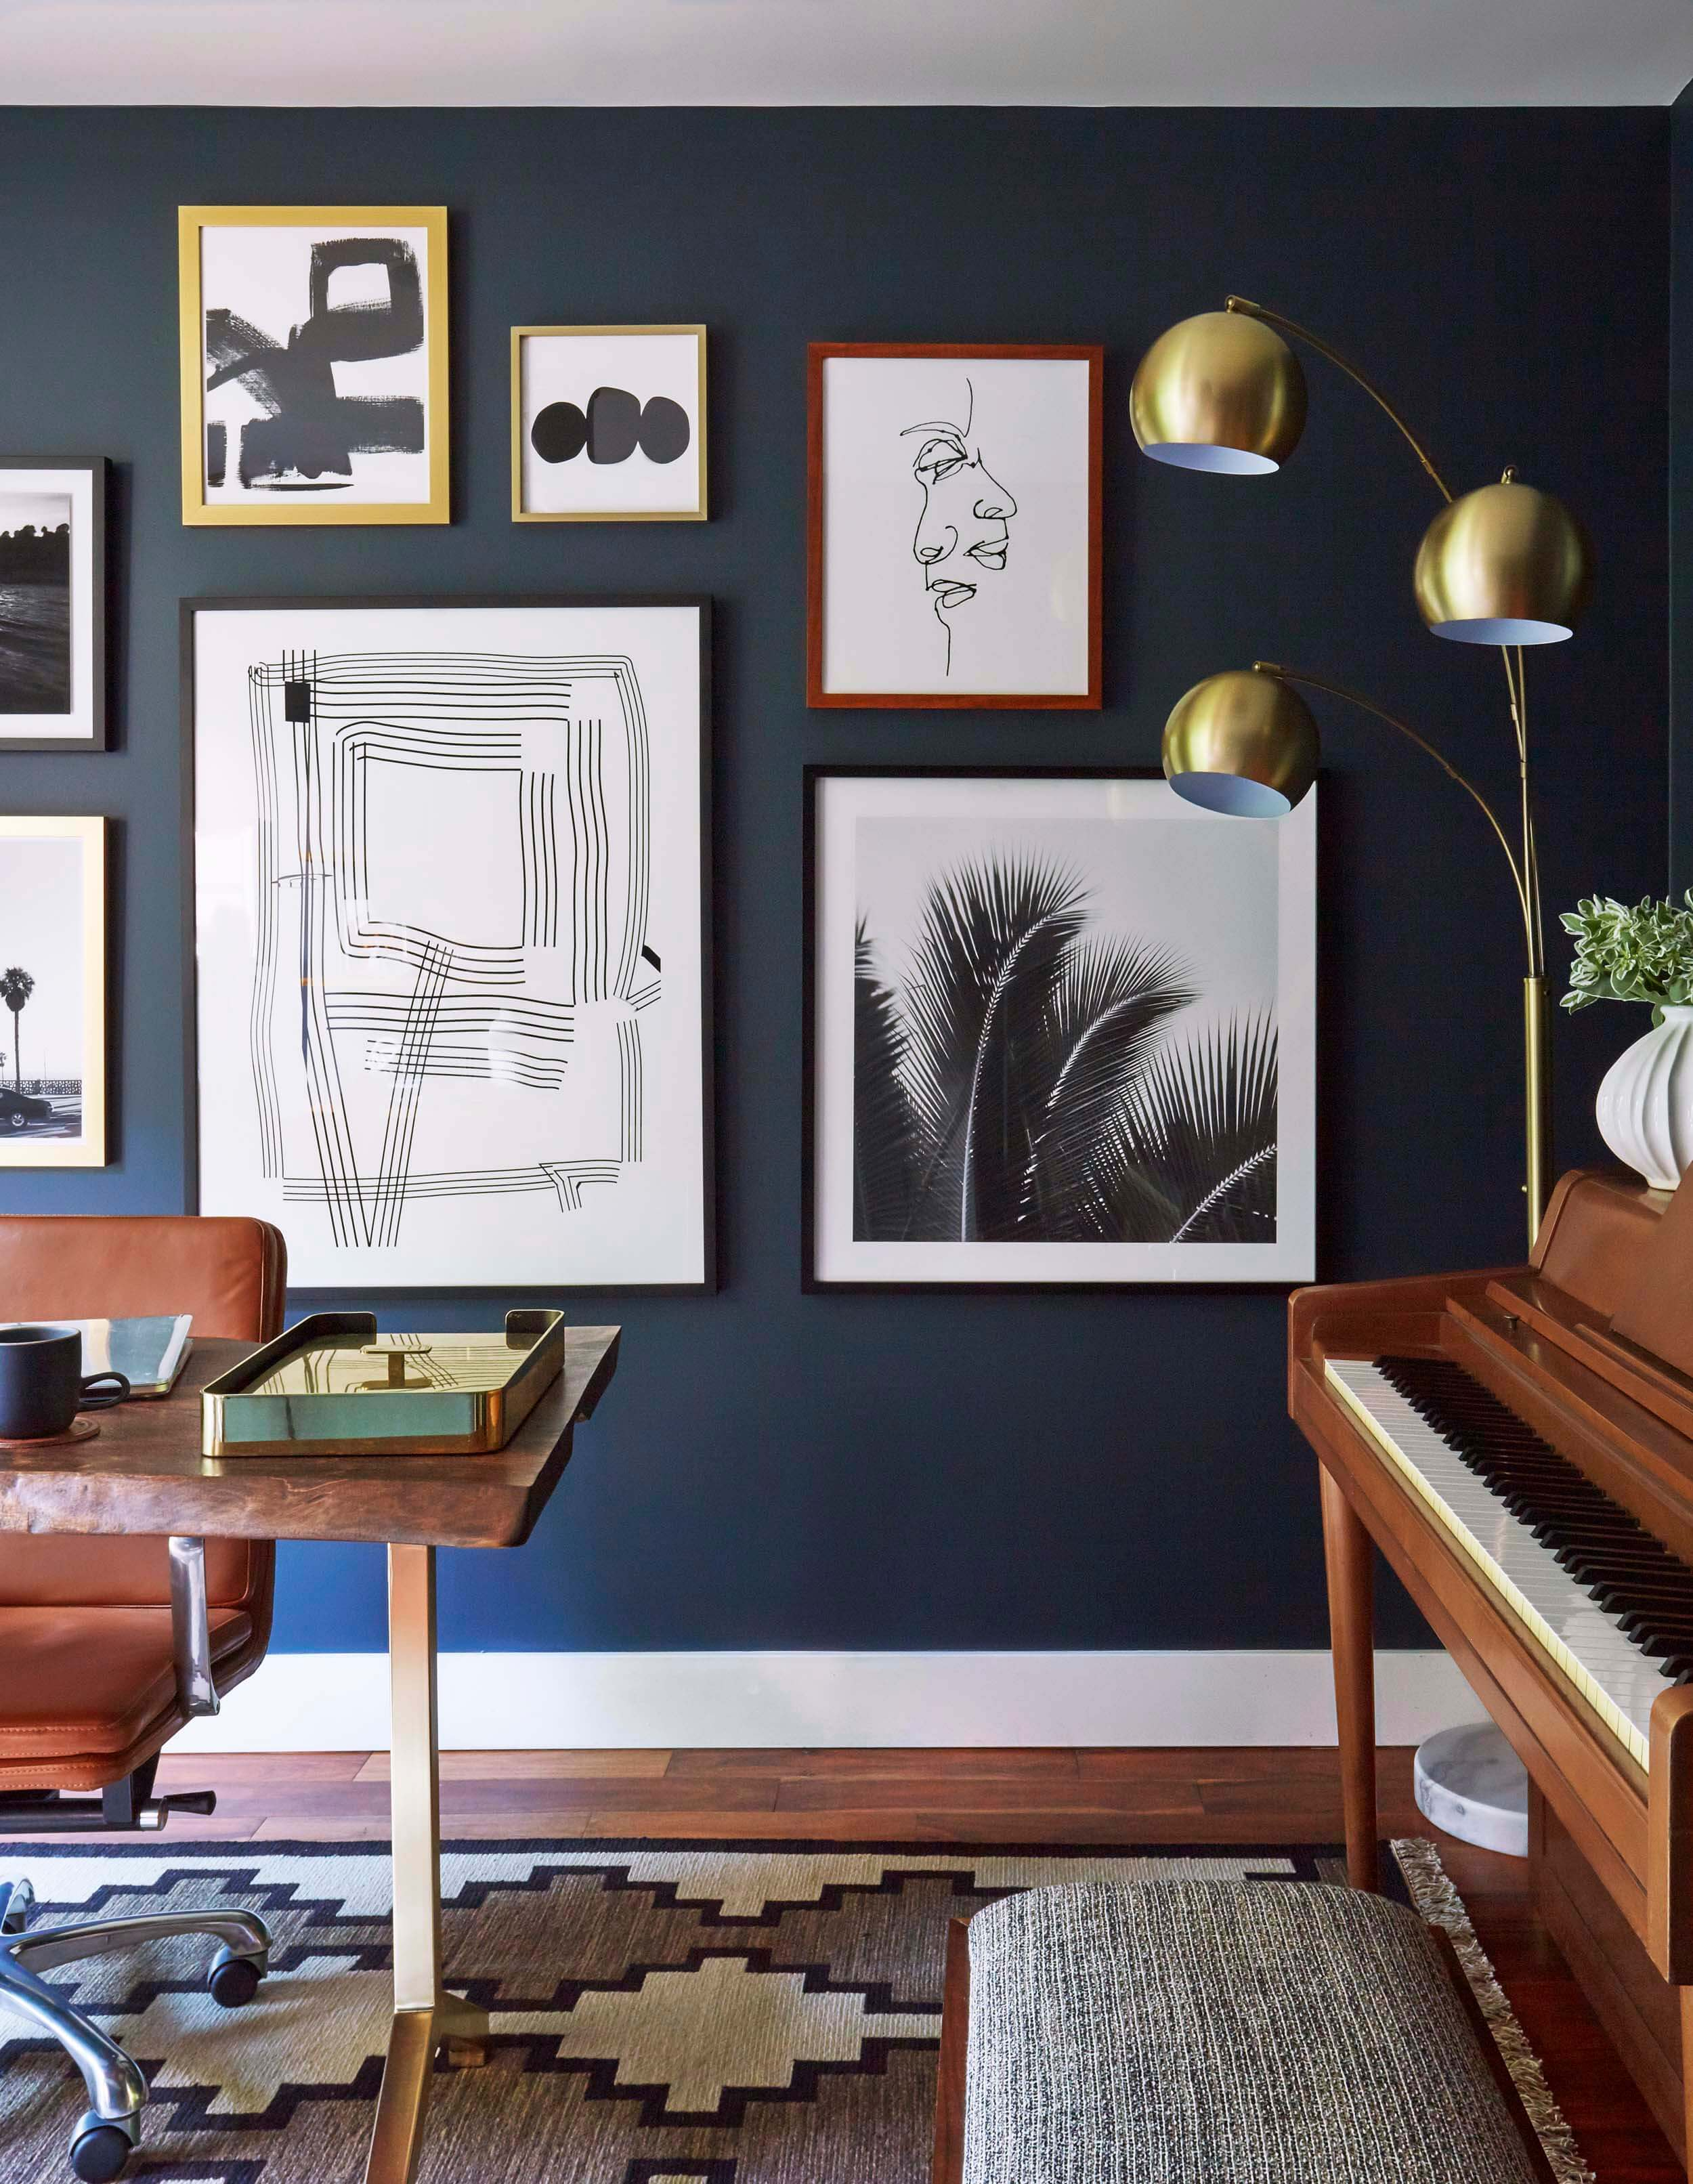 The brass finish of this lamp is picked up in the brass tray and legs of the desk, as well as the gold frames against the dark wall. This use of the lamp is anything but incidental. It's carefully thought out and even works up a beautiful rhythm of curves with the palm tree in the image beside it. Image courtesy Ginny Macdonald Design.